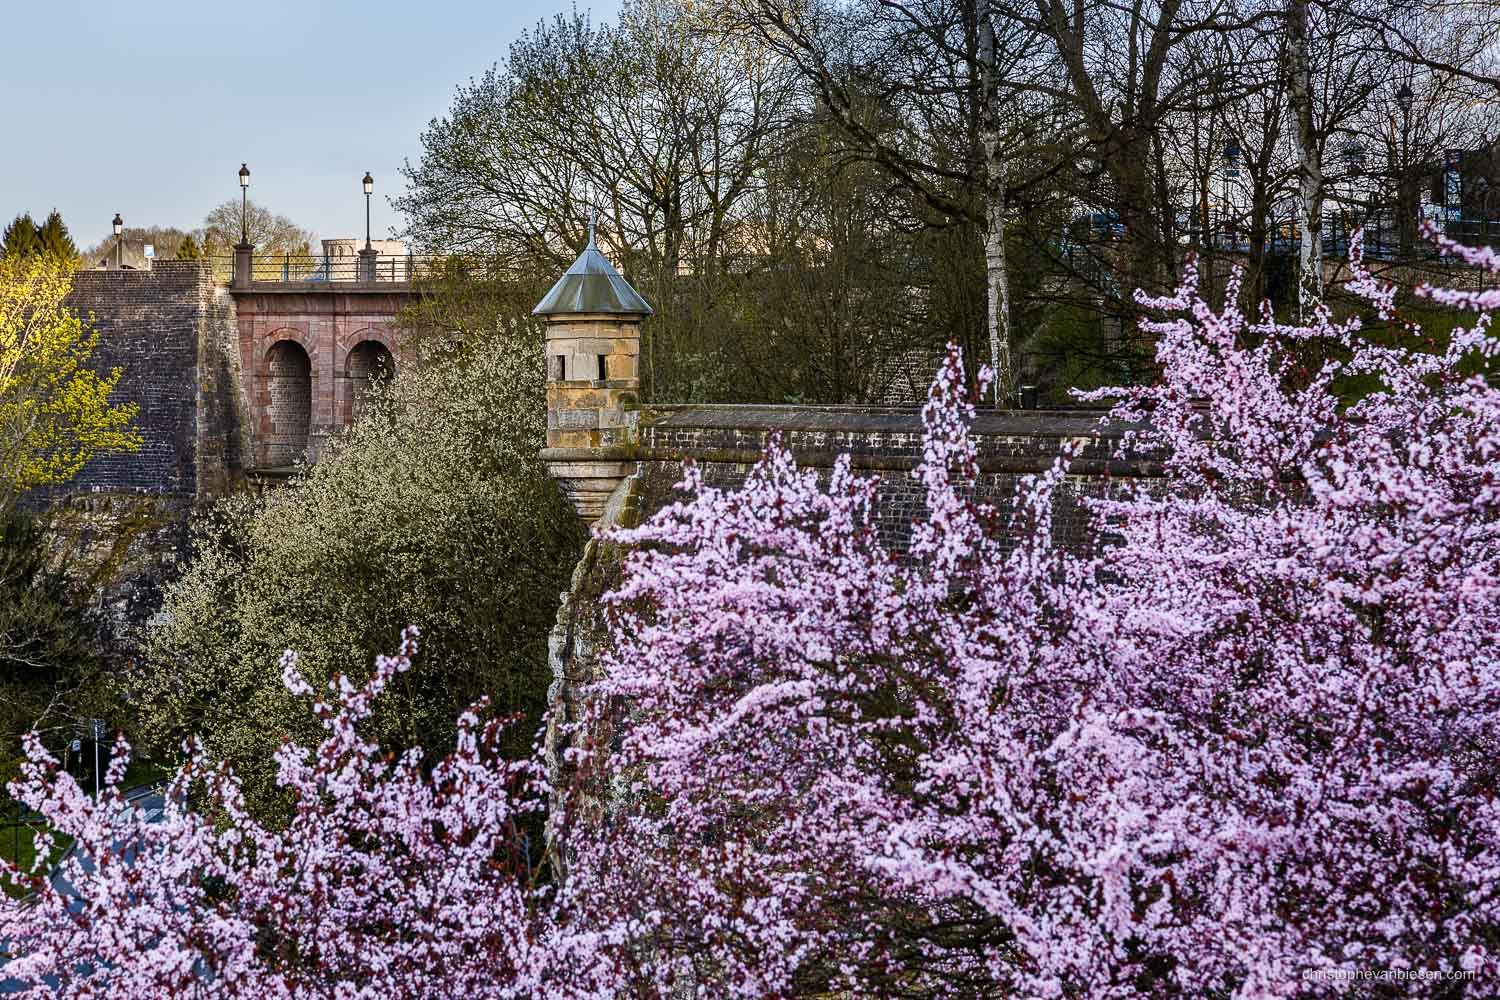 Spring in Luxembourg - Spring in Luxembourg City. The pink blossoms on some cherry trees look like waves crashing on the rock of the ancient fortress - Pink Tide